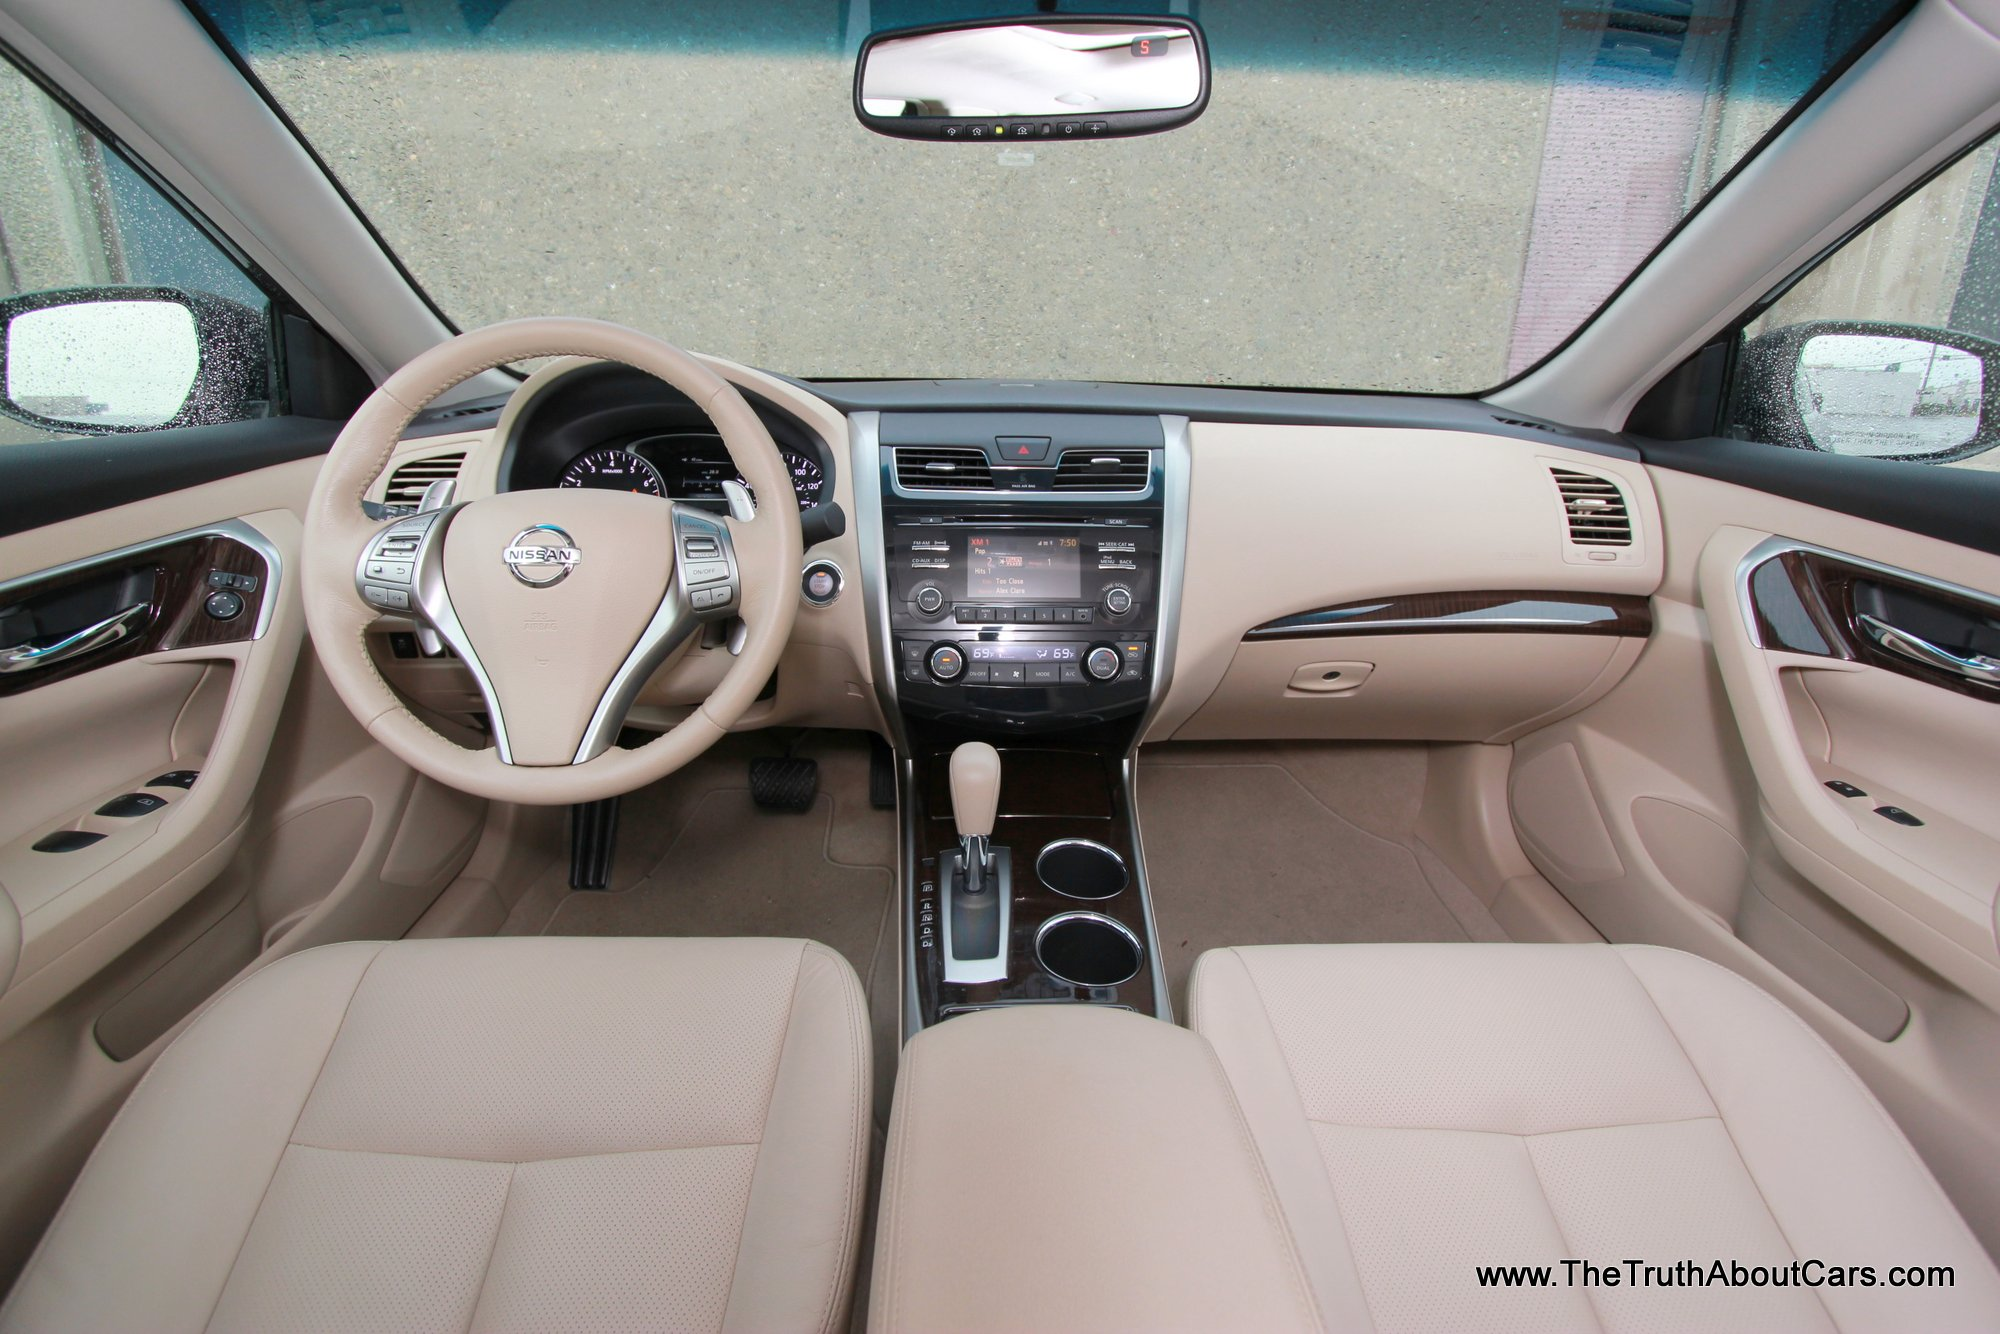 2013 Nissan Altima 3.5 SL, Interior, Dashboard, Picture Courtesy Of Alex L.  Dykes